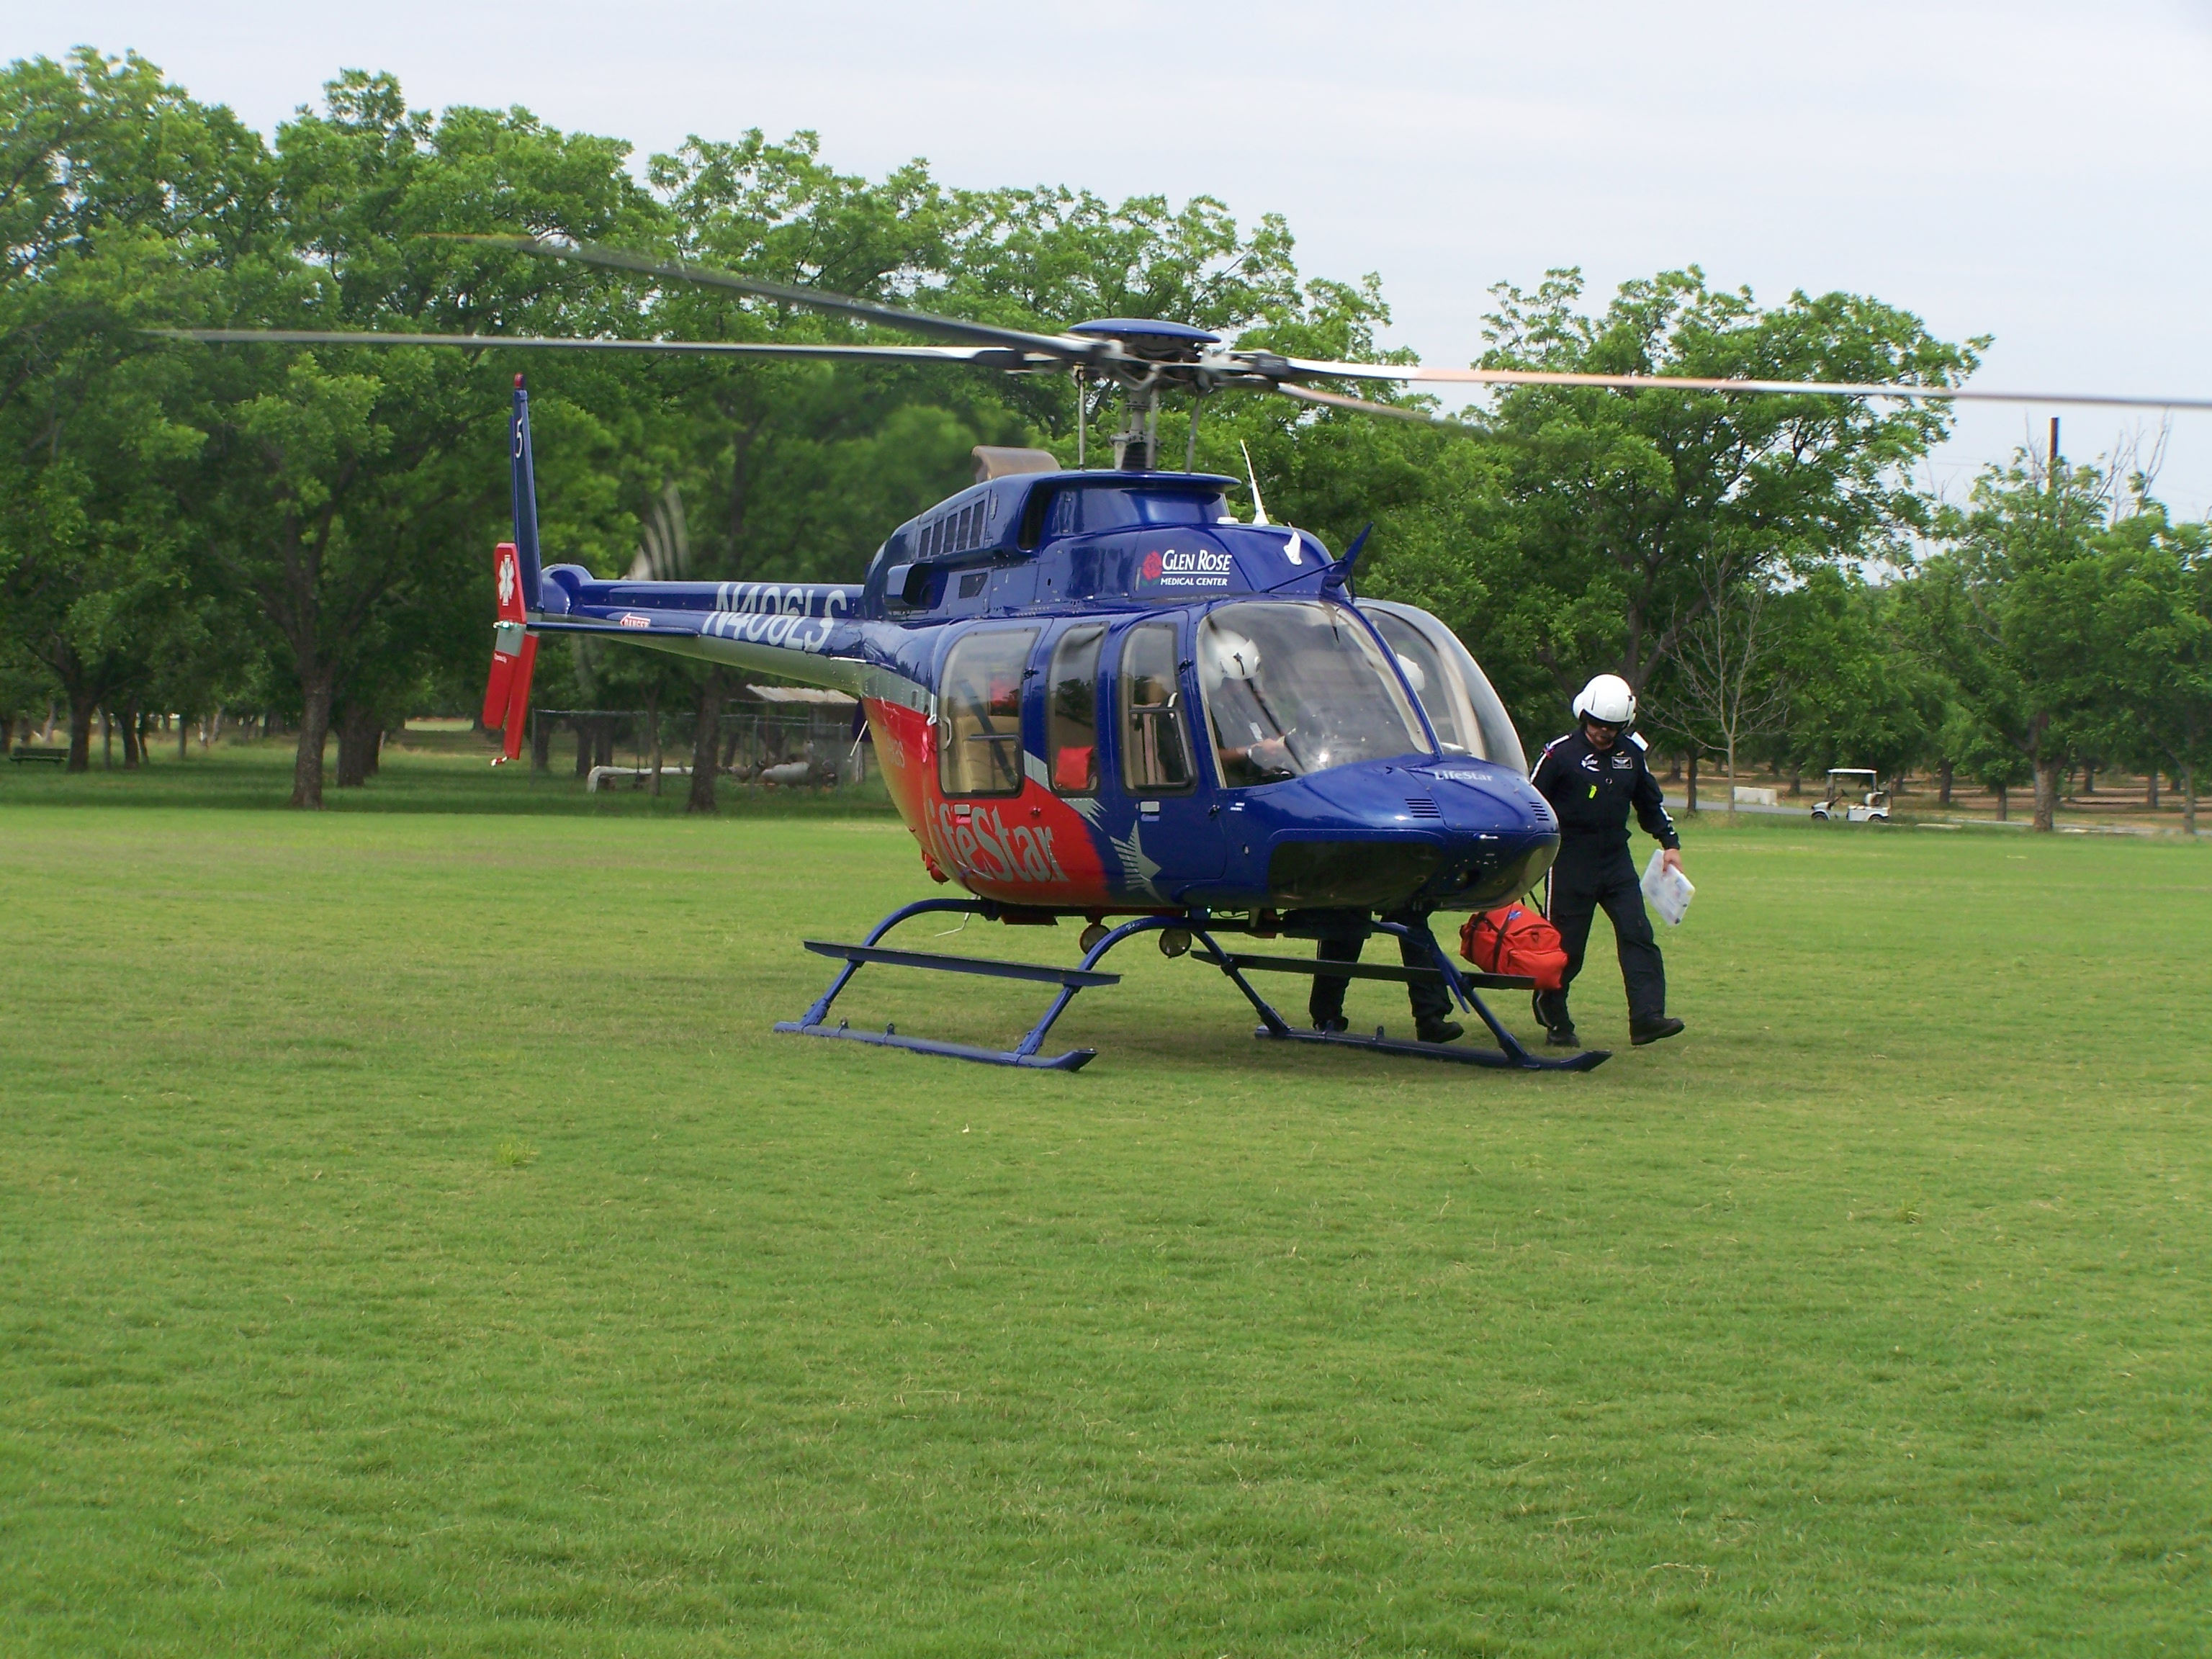 lifestar helicopter with Air Ambulance Memberships on Watch likewise 7219495118 also Bay Area Health Research News 4477460 also Day Kimball Hospital Receives Recognition Plaque additionally 422838.